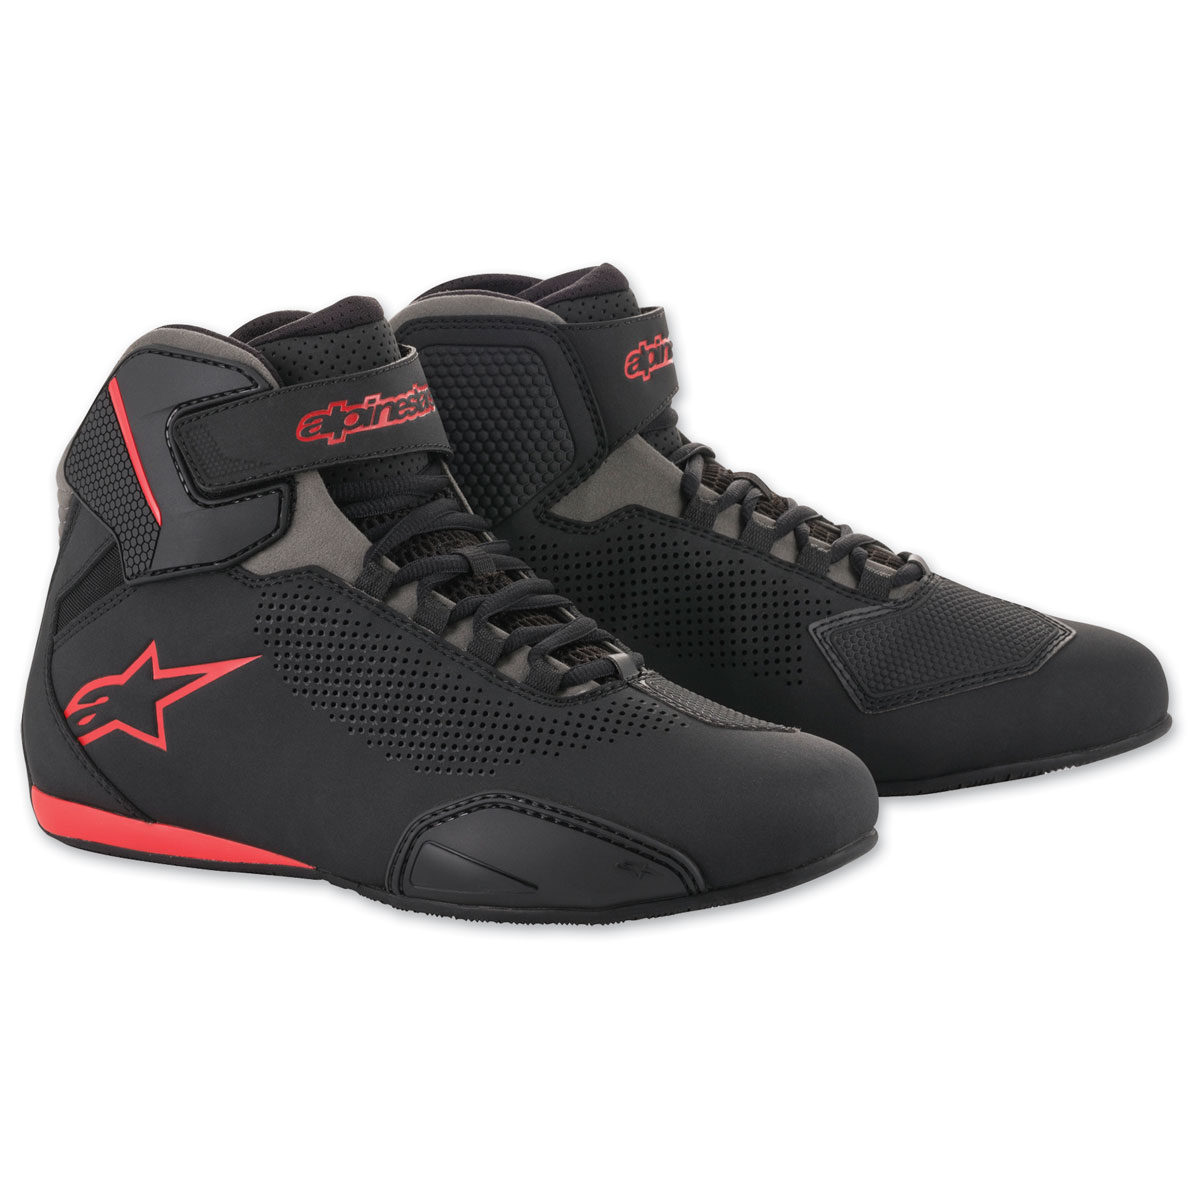 Alpinestars Men's Sektor Vented Black/Gray/Red Shoes